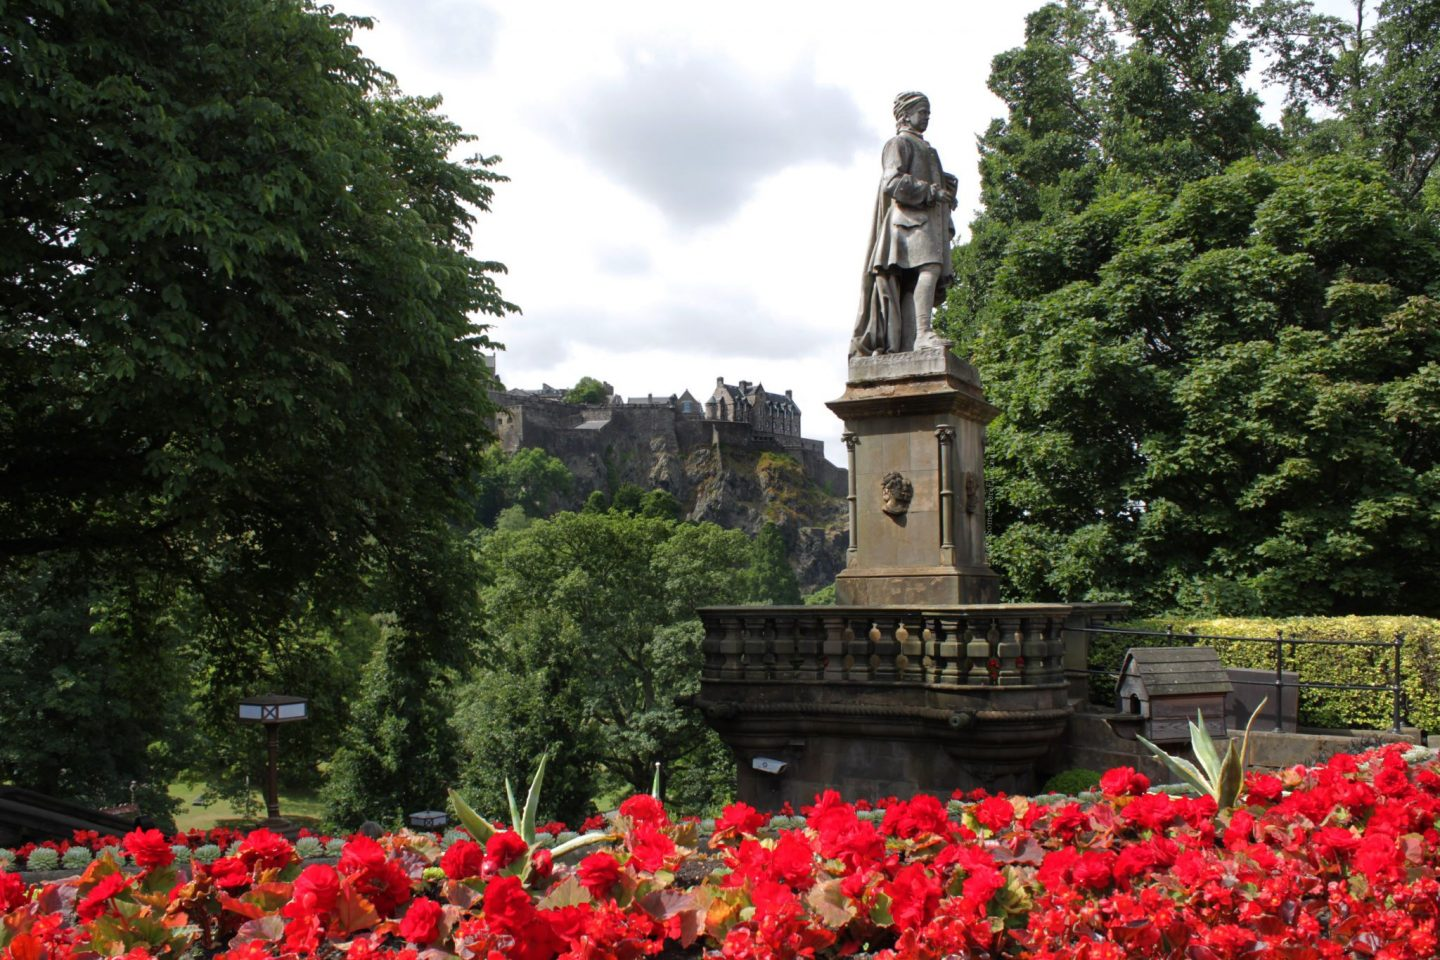 West princes street garden, flowers